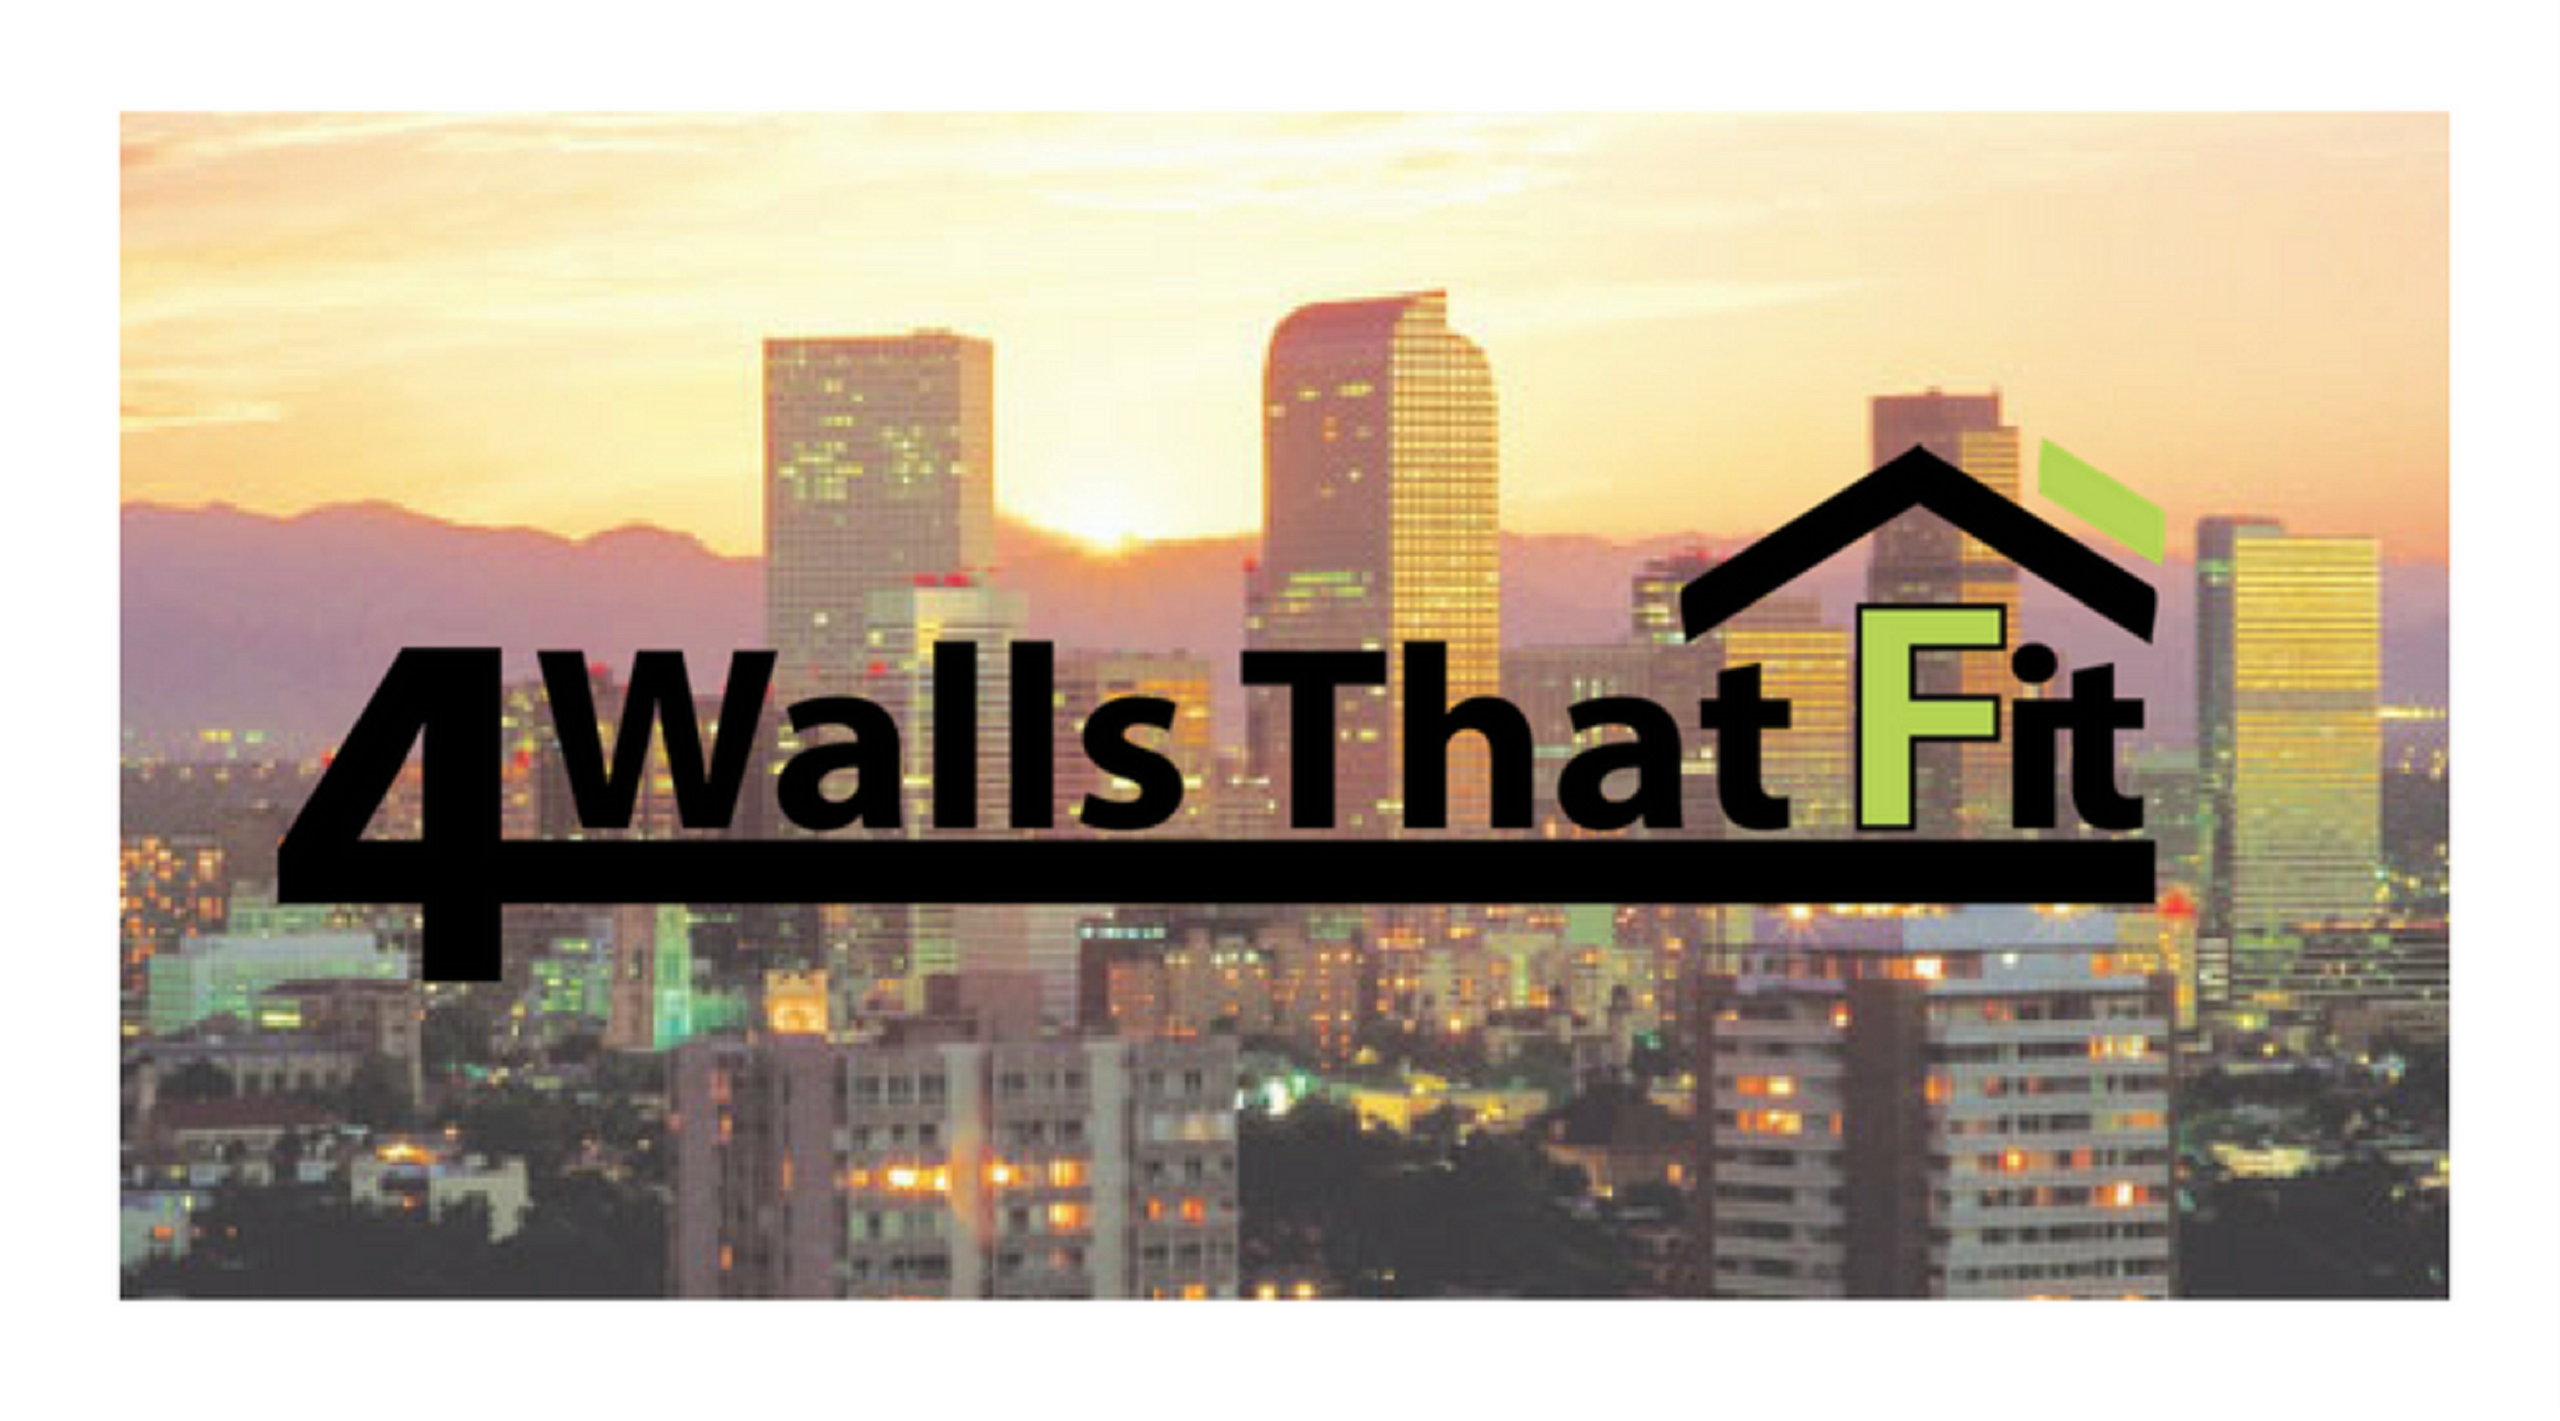 Newsletter 4 walls that fit out about newsletter email address first name last name malvernweather Images